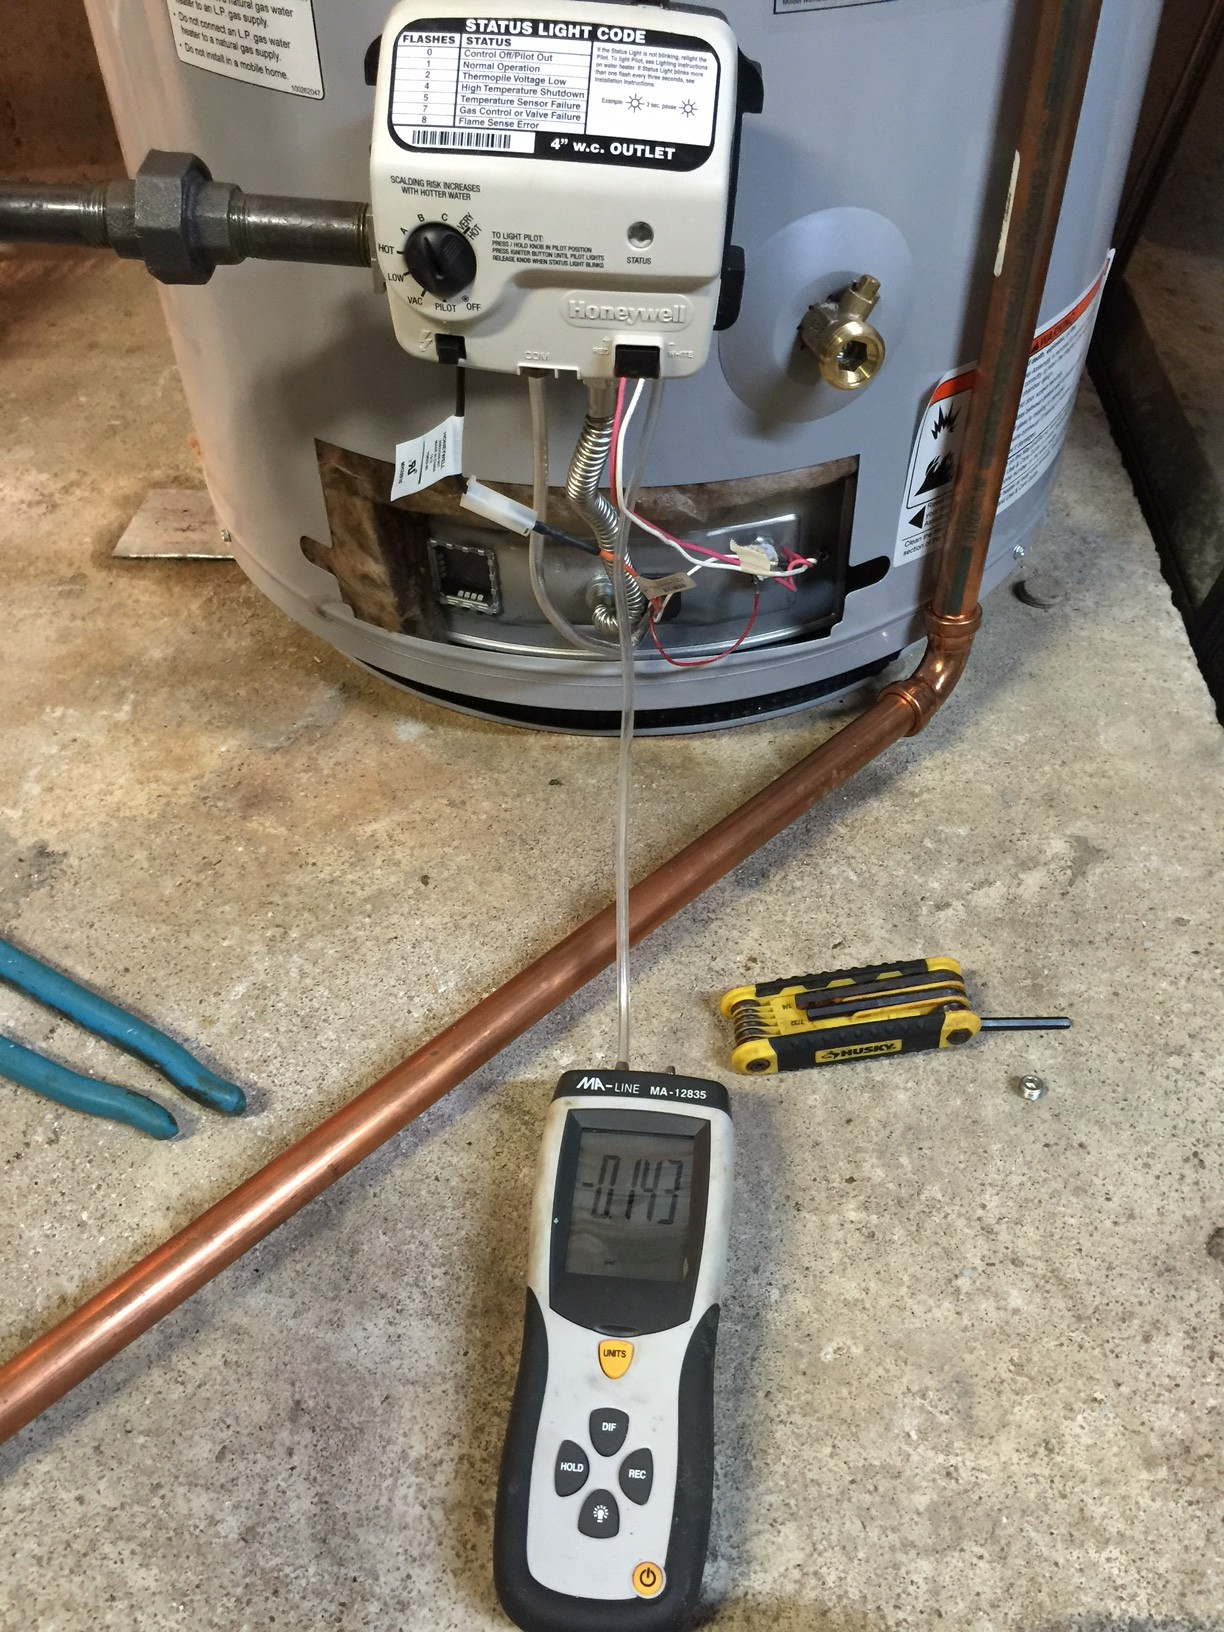 Honeywell Gas Control Valve Troubleshooting For Water Heaters